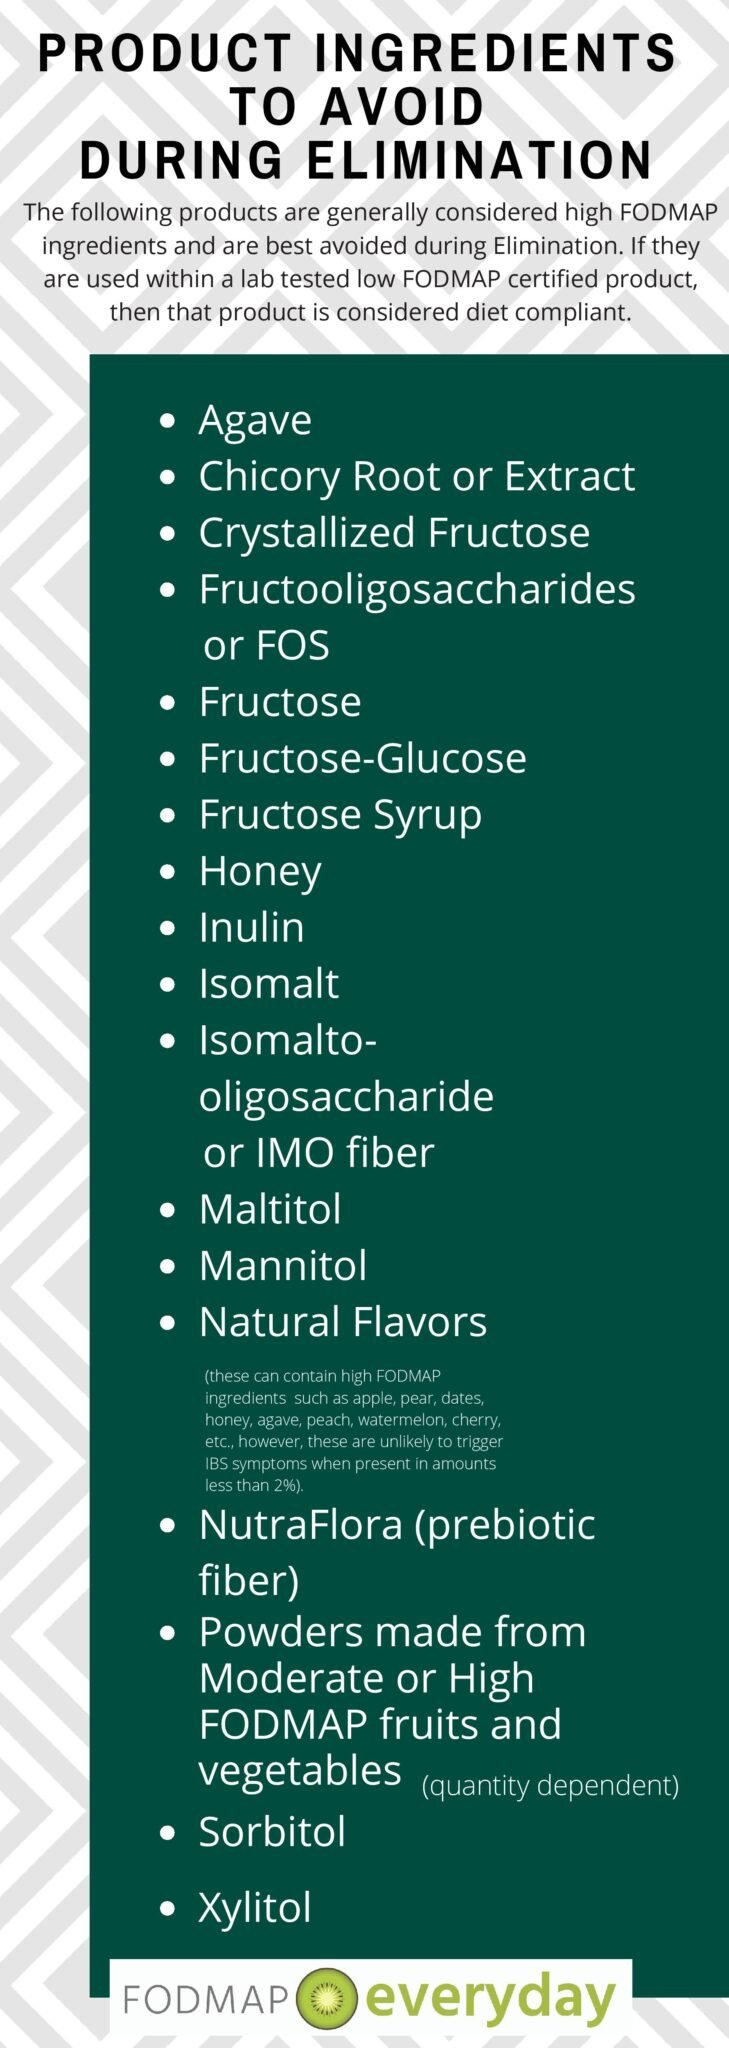 High FODMAP Ingredients often found in protein drinks